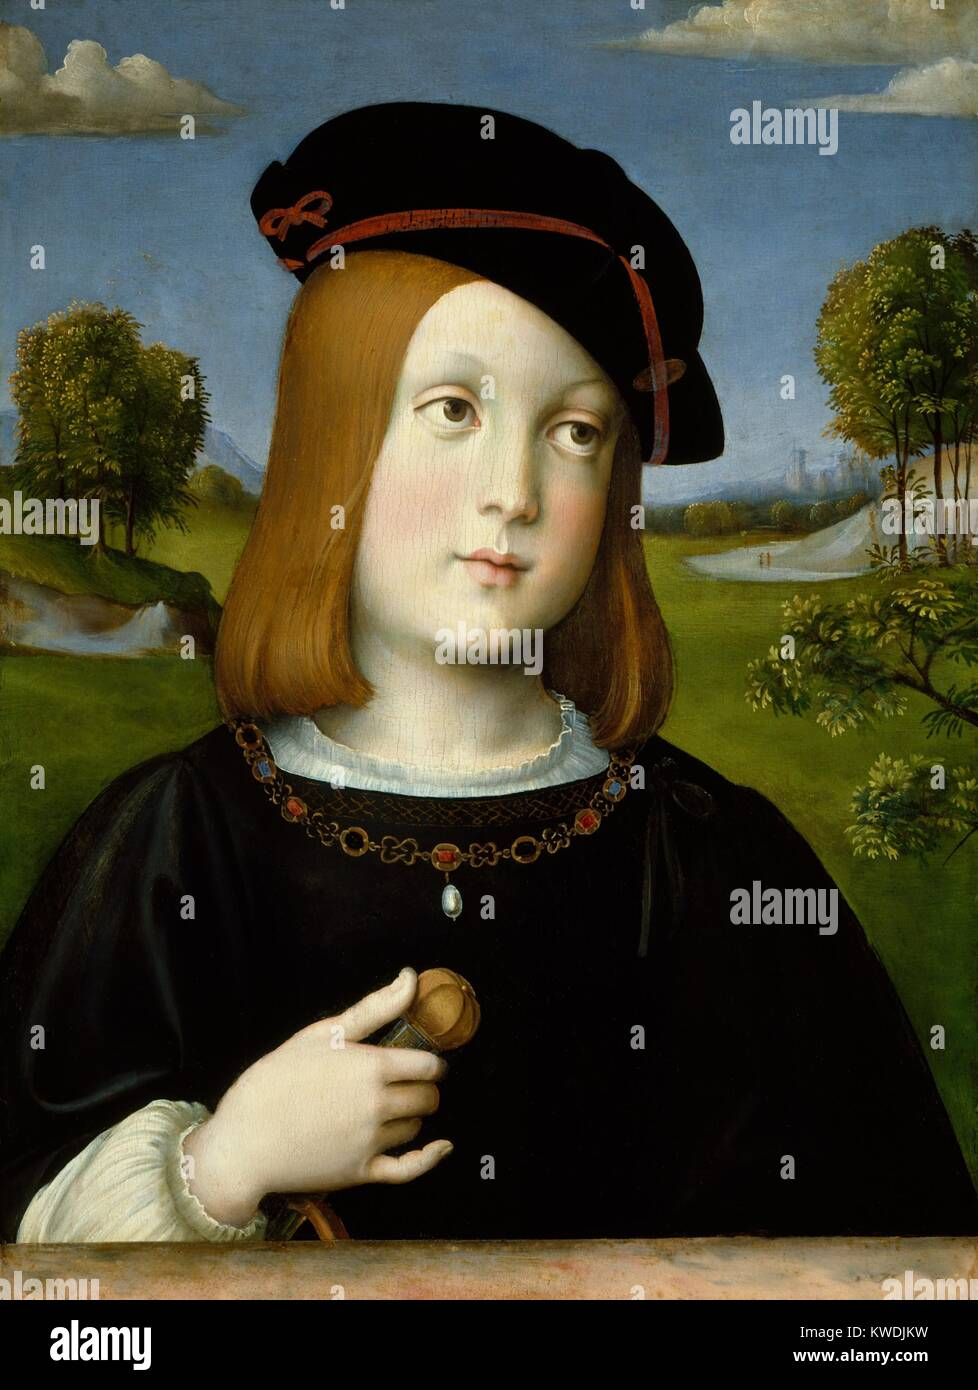 FEDERIGO GONZAGA, by Francesco Francia, 1510, Italian Renaissance painting, tempera on wood. The great Renaissance - Stock Image